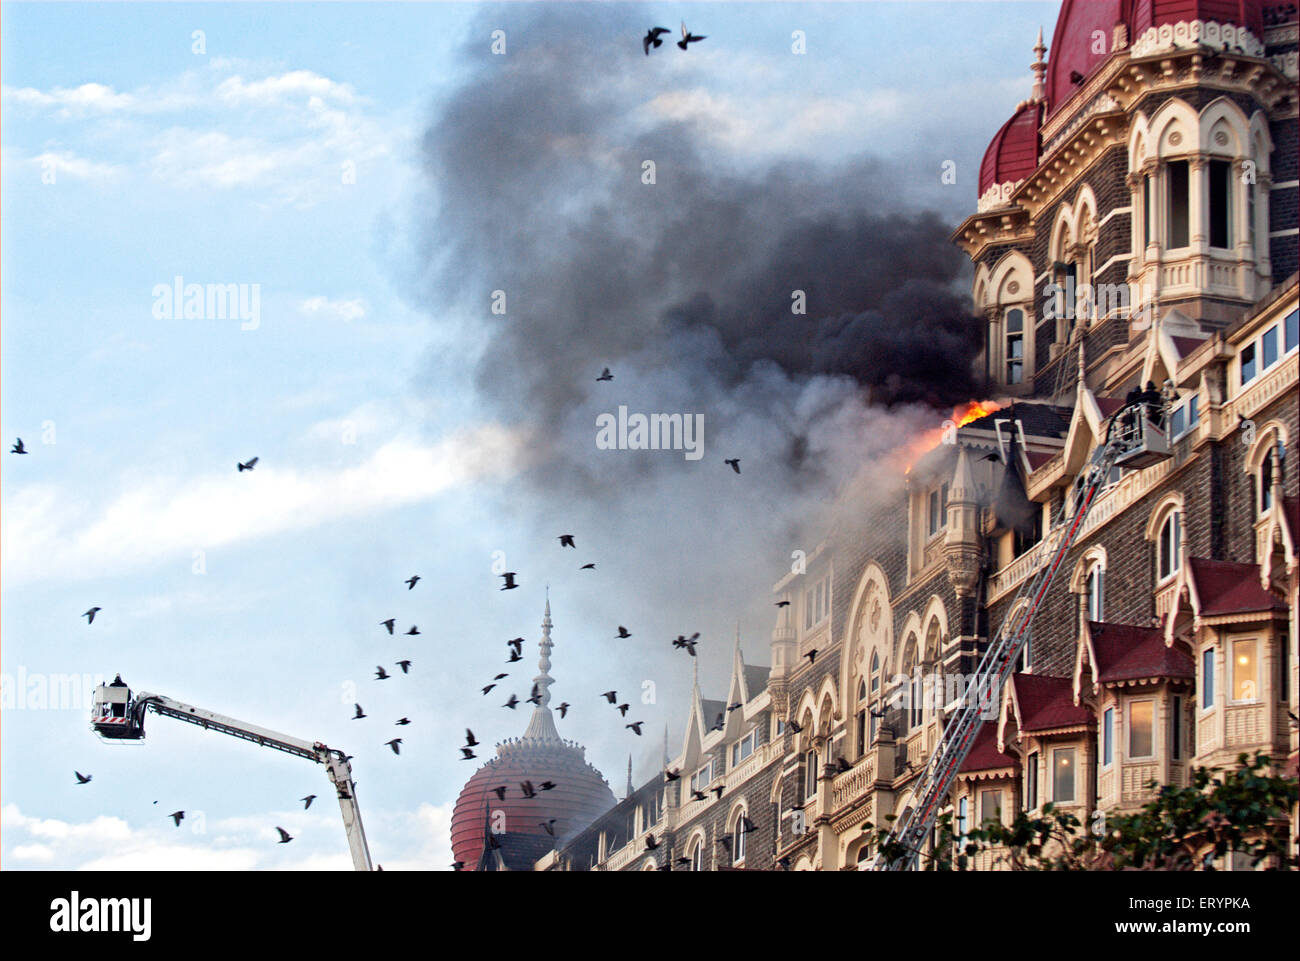 Fire fighters try to douse fire inside of Taj Mahal hotel after terrorist attack by deccan mujahedeen Bombay - Stock Image